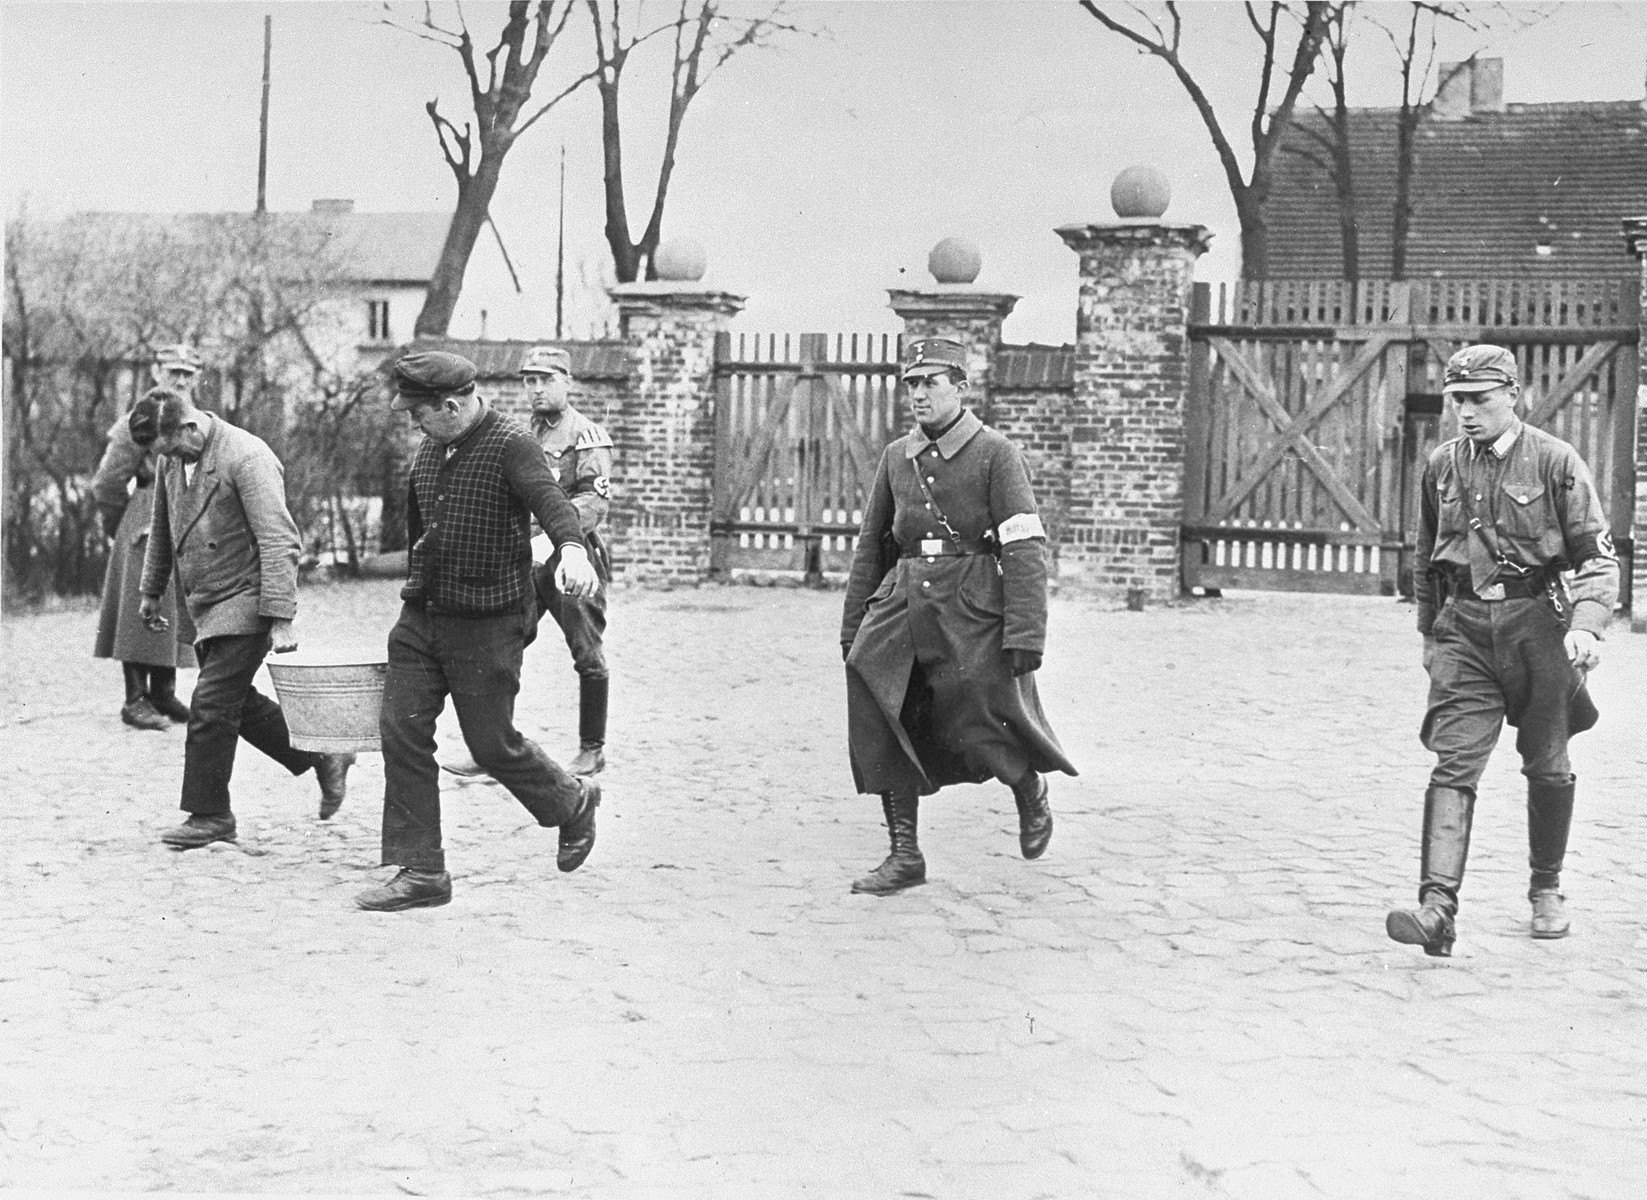 SA guards oversee prisoners who are carrying a tub near the entrance to the Oranienburg concentration camp.